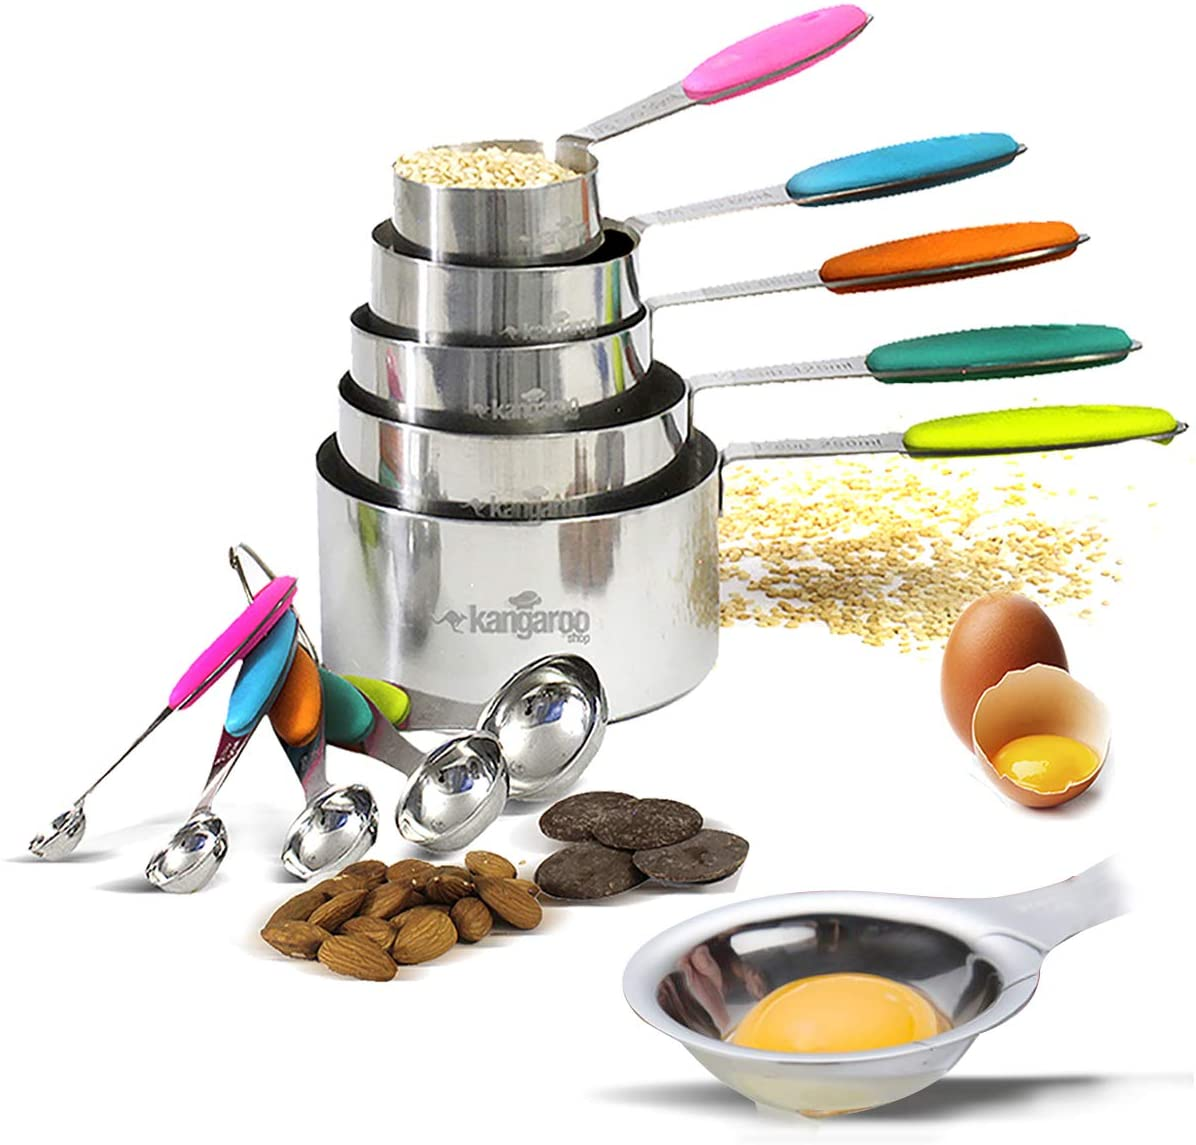 Measuring Cups and Spoons Stainless Steel 10 Pieces Set. Includes Egg Yolk and White Separator. Measure Liquid and Dry Ingredients for Cooking and Baking. Multicolor Silicon handles.